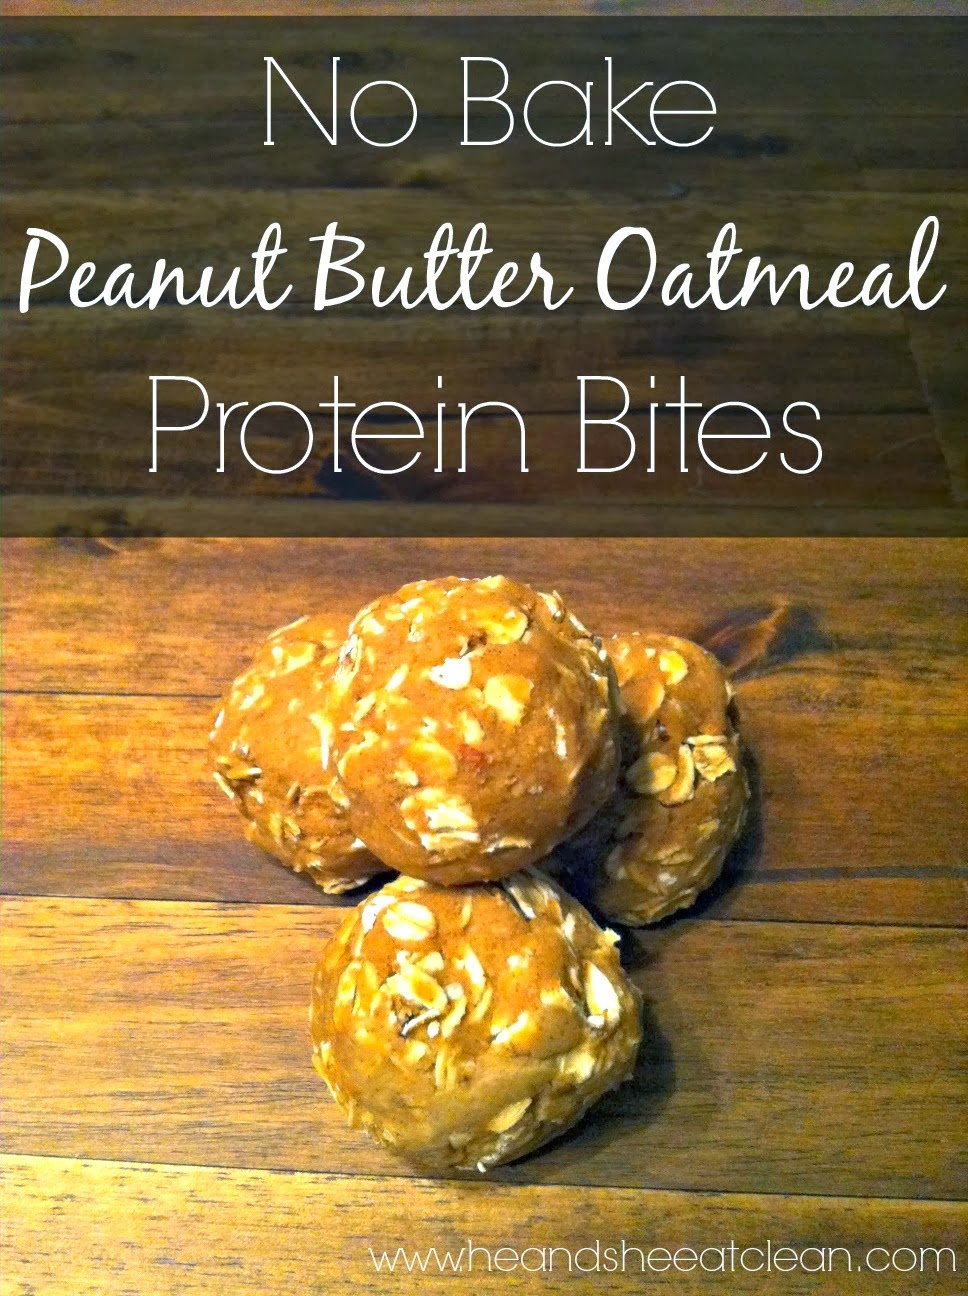 No Bake Peanut Butter Oatmeal Protein Bites | He and She Eat Clean